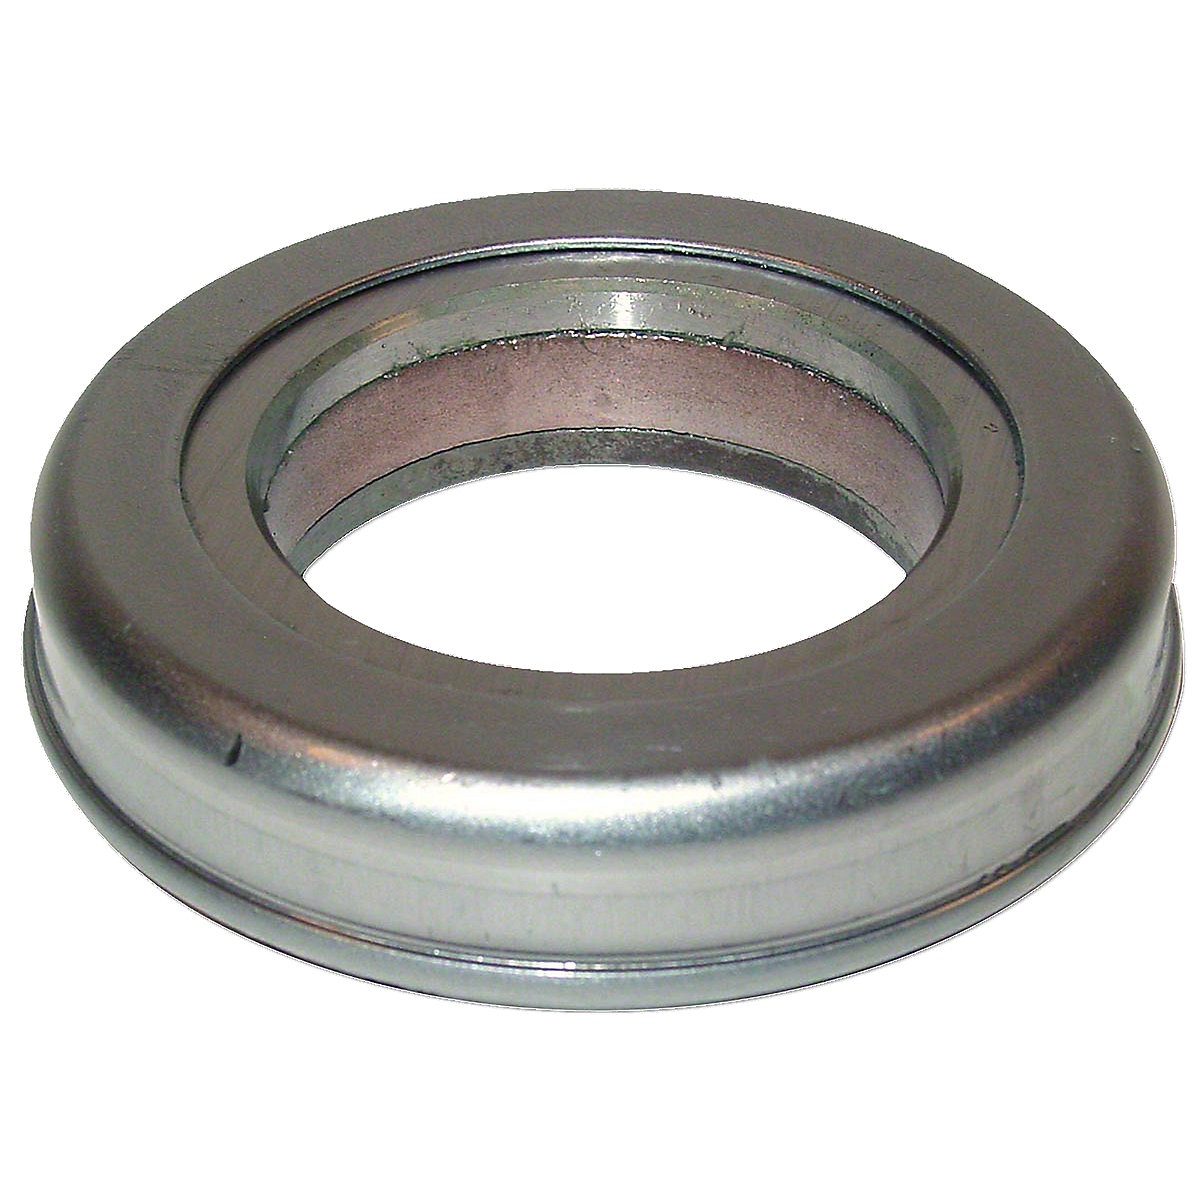 Throw Out Bearing For Allis Chalmers: 190XT, B, C, CA, D10, D12, D14, D15, D17, D19, 180, 185, 190, 200.